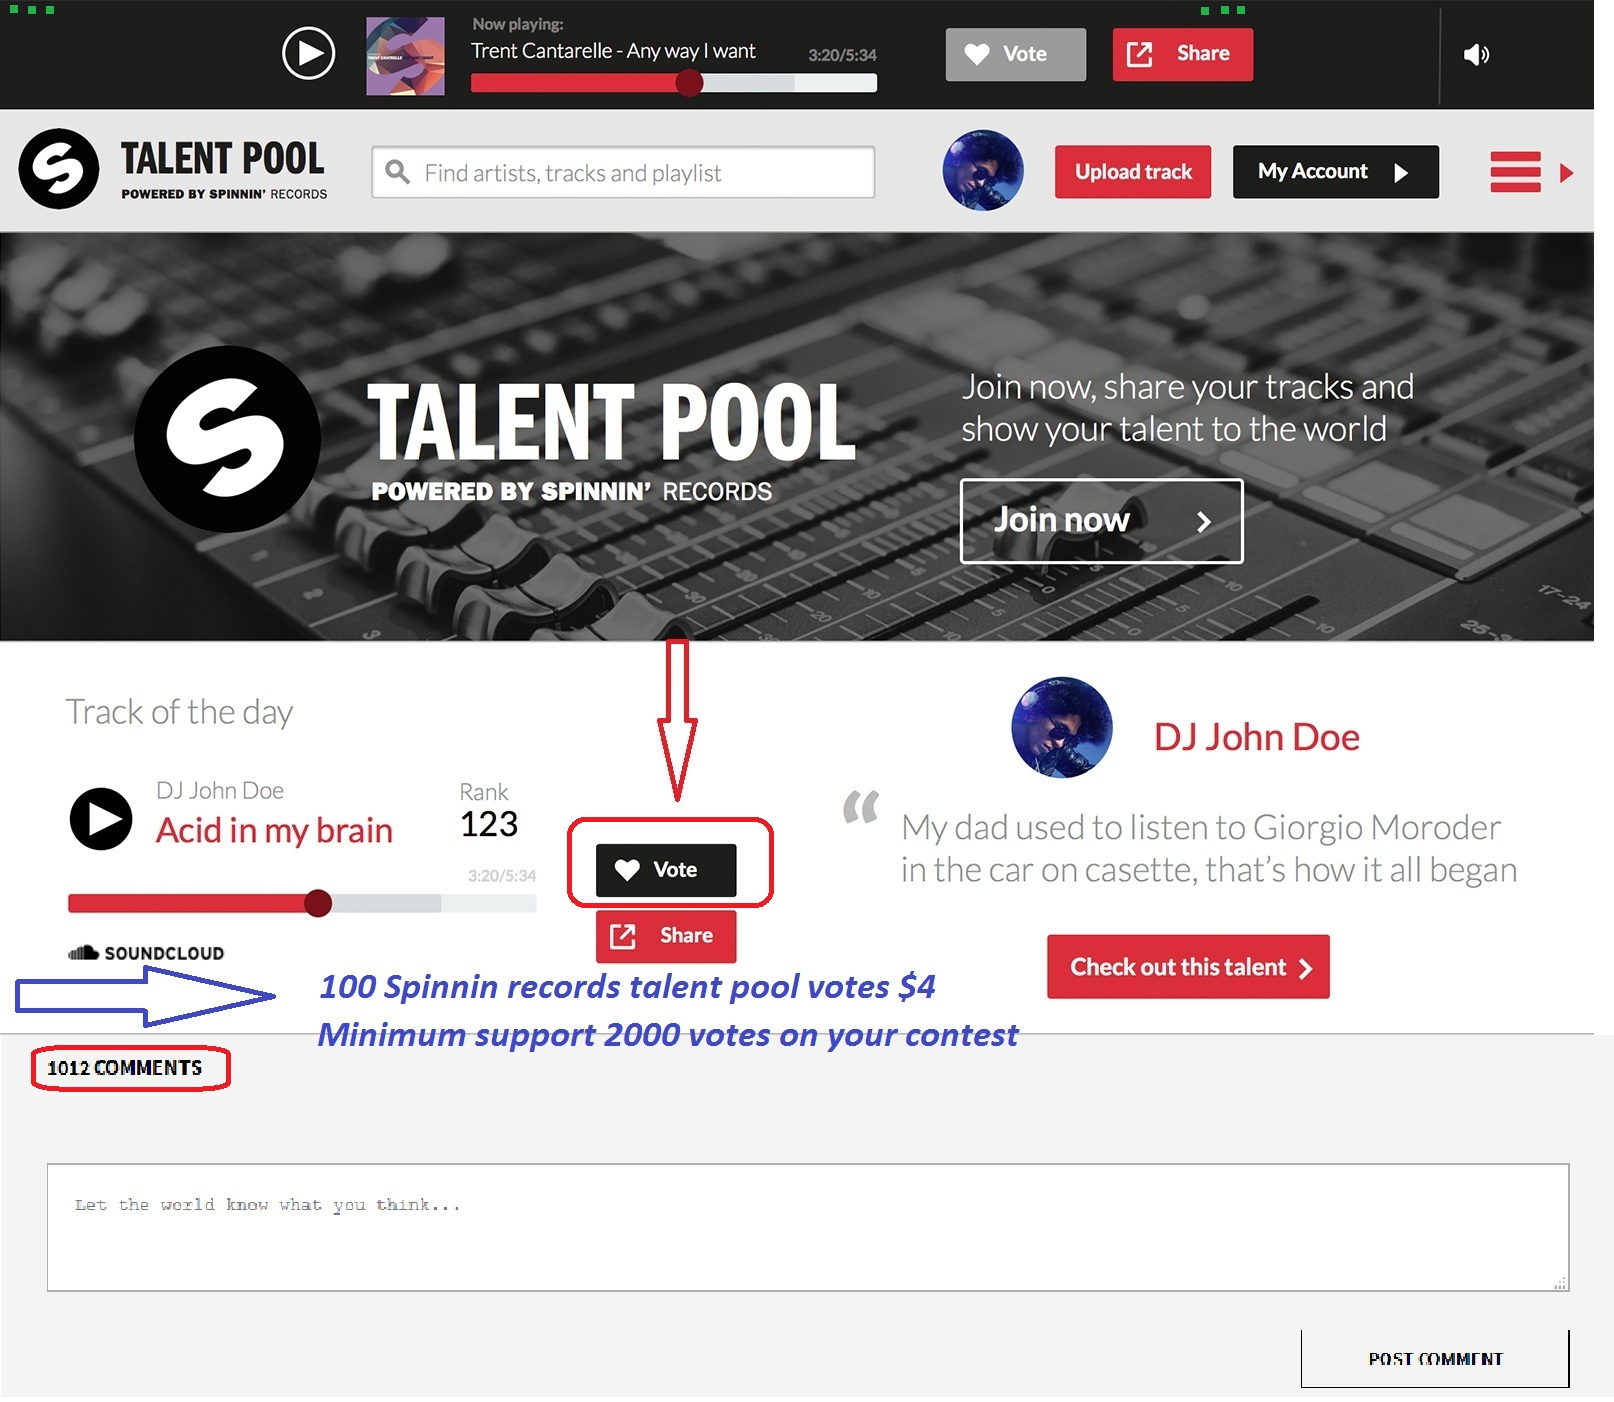 Bring 100 spinning records talent pool comments or votes on your spinning records talent pool contest